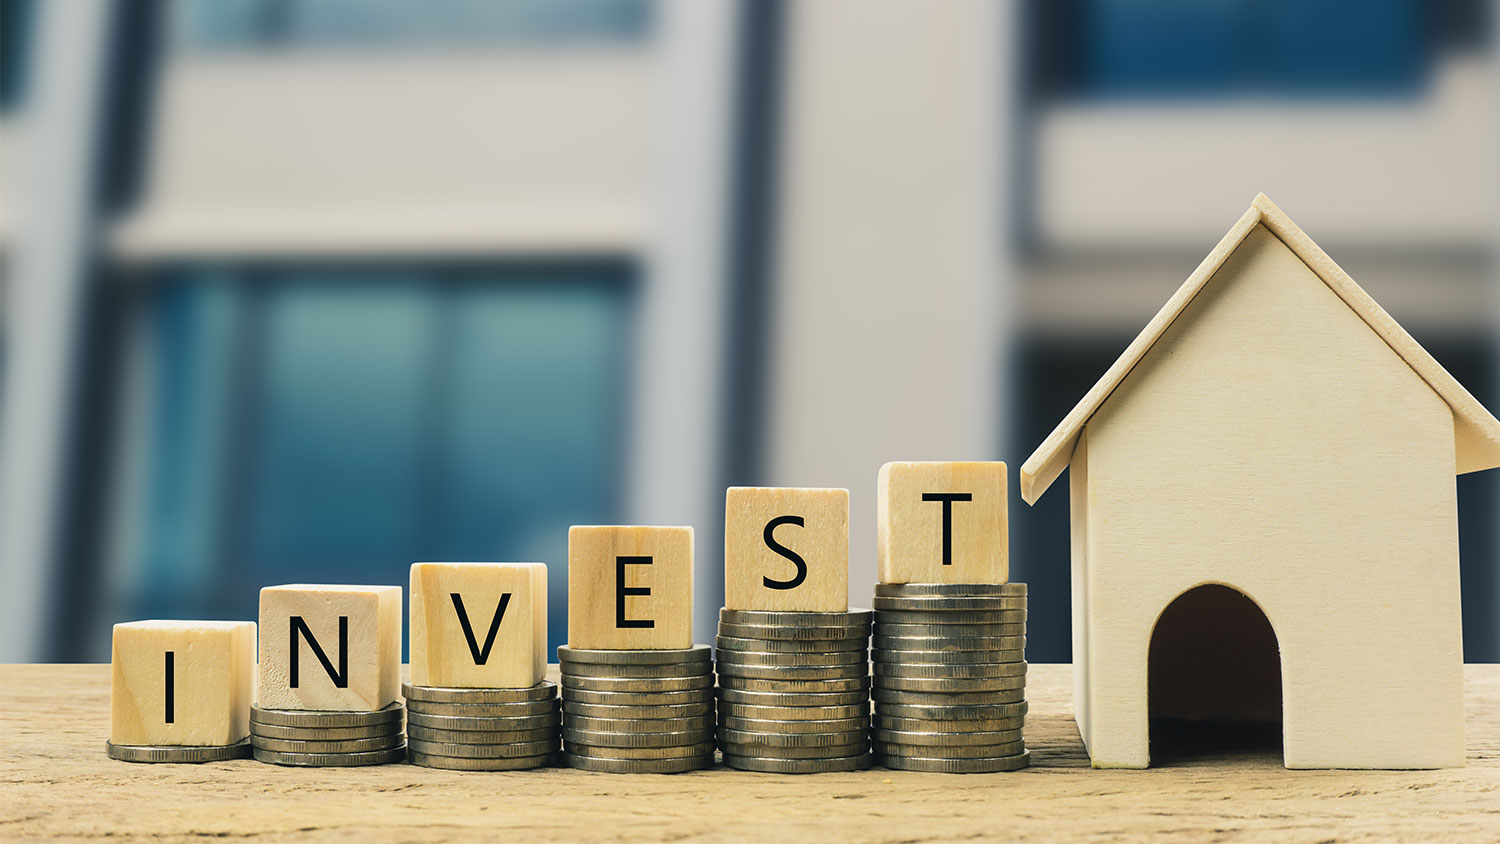 PROPERTY INVESTMENTS REMAIN ONE OF THE SAFEST OPTIONS